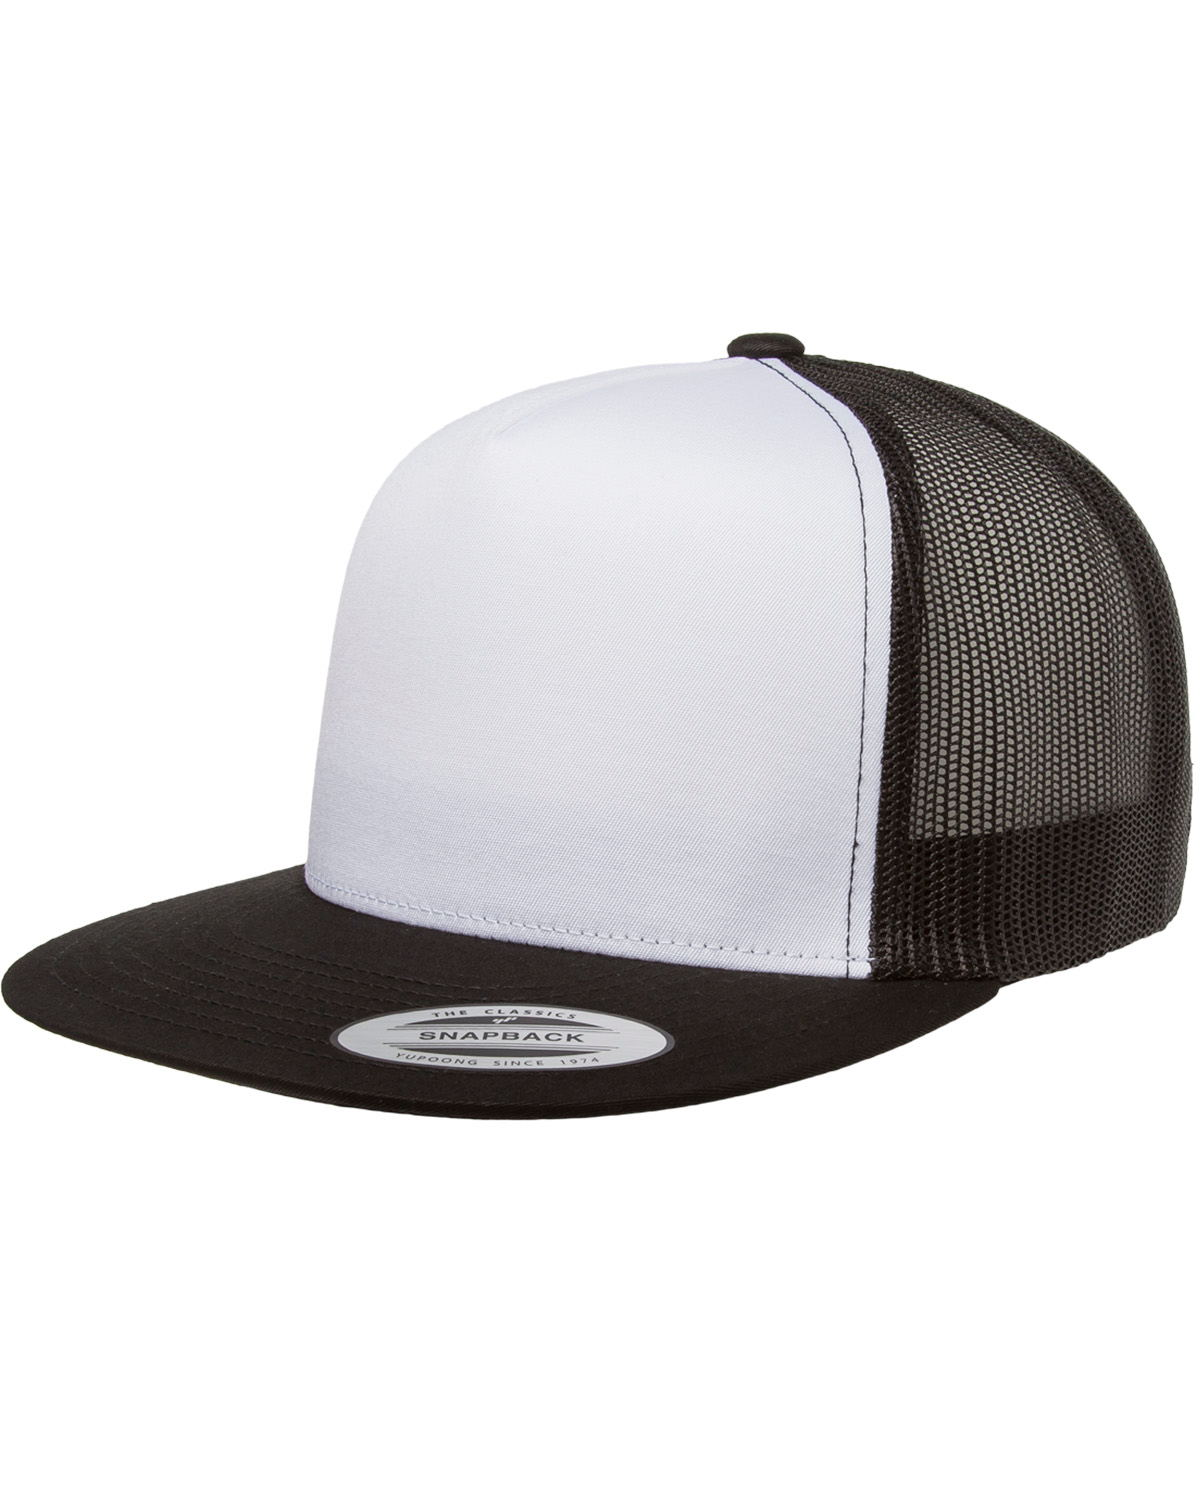 Yupoong 6006W - Adult Classic Trucker with White F